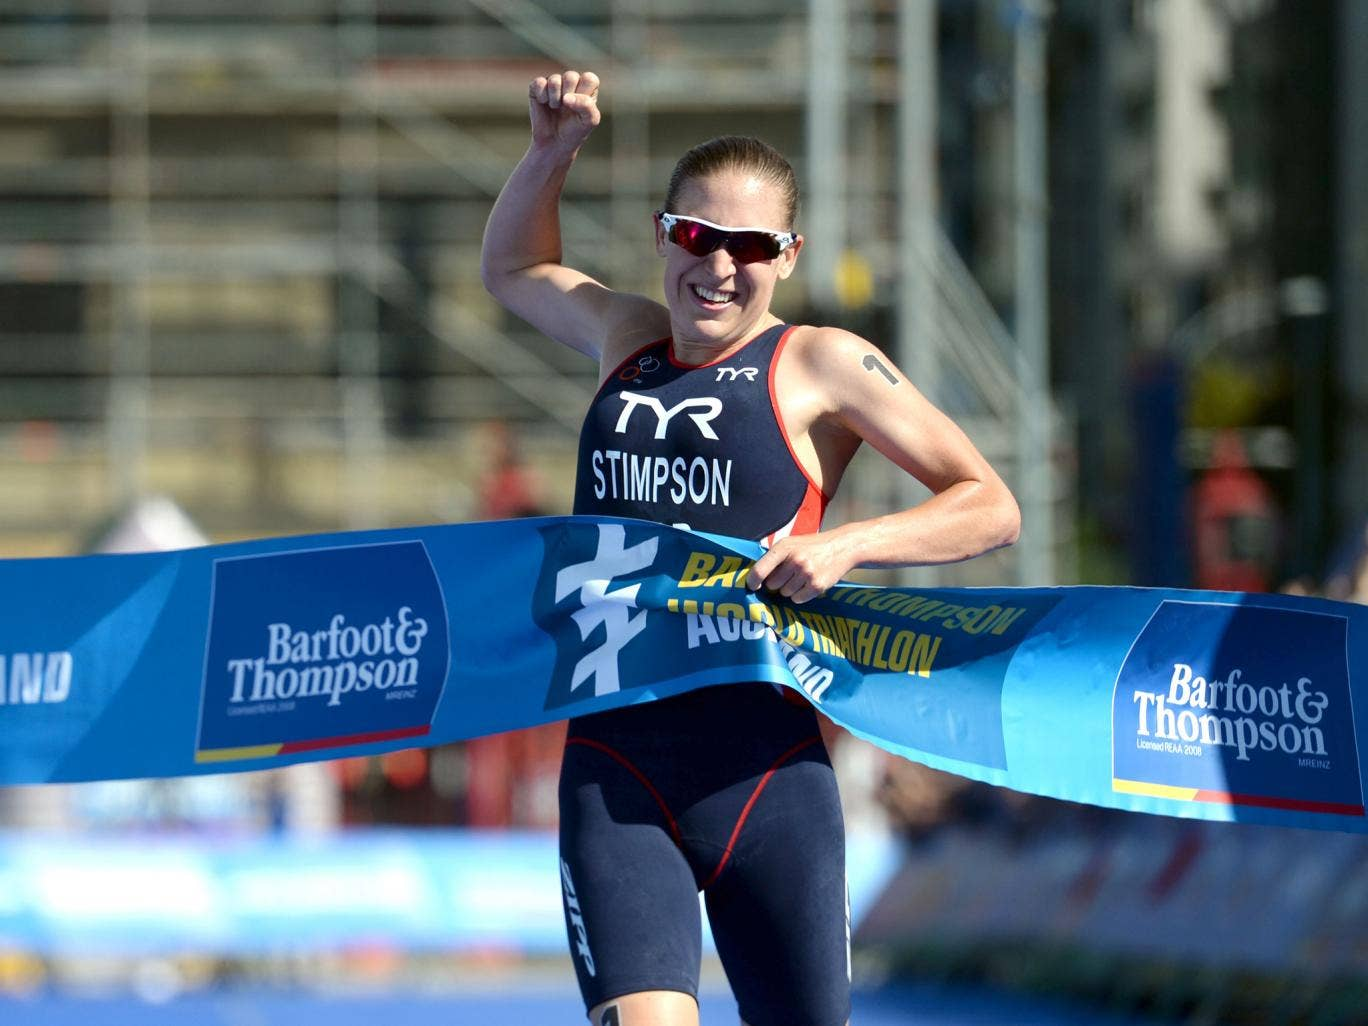 Jodie Stimpson takes victory in the opening round of the World Triathlon Series in Auckland